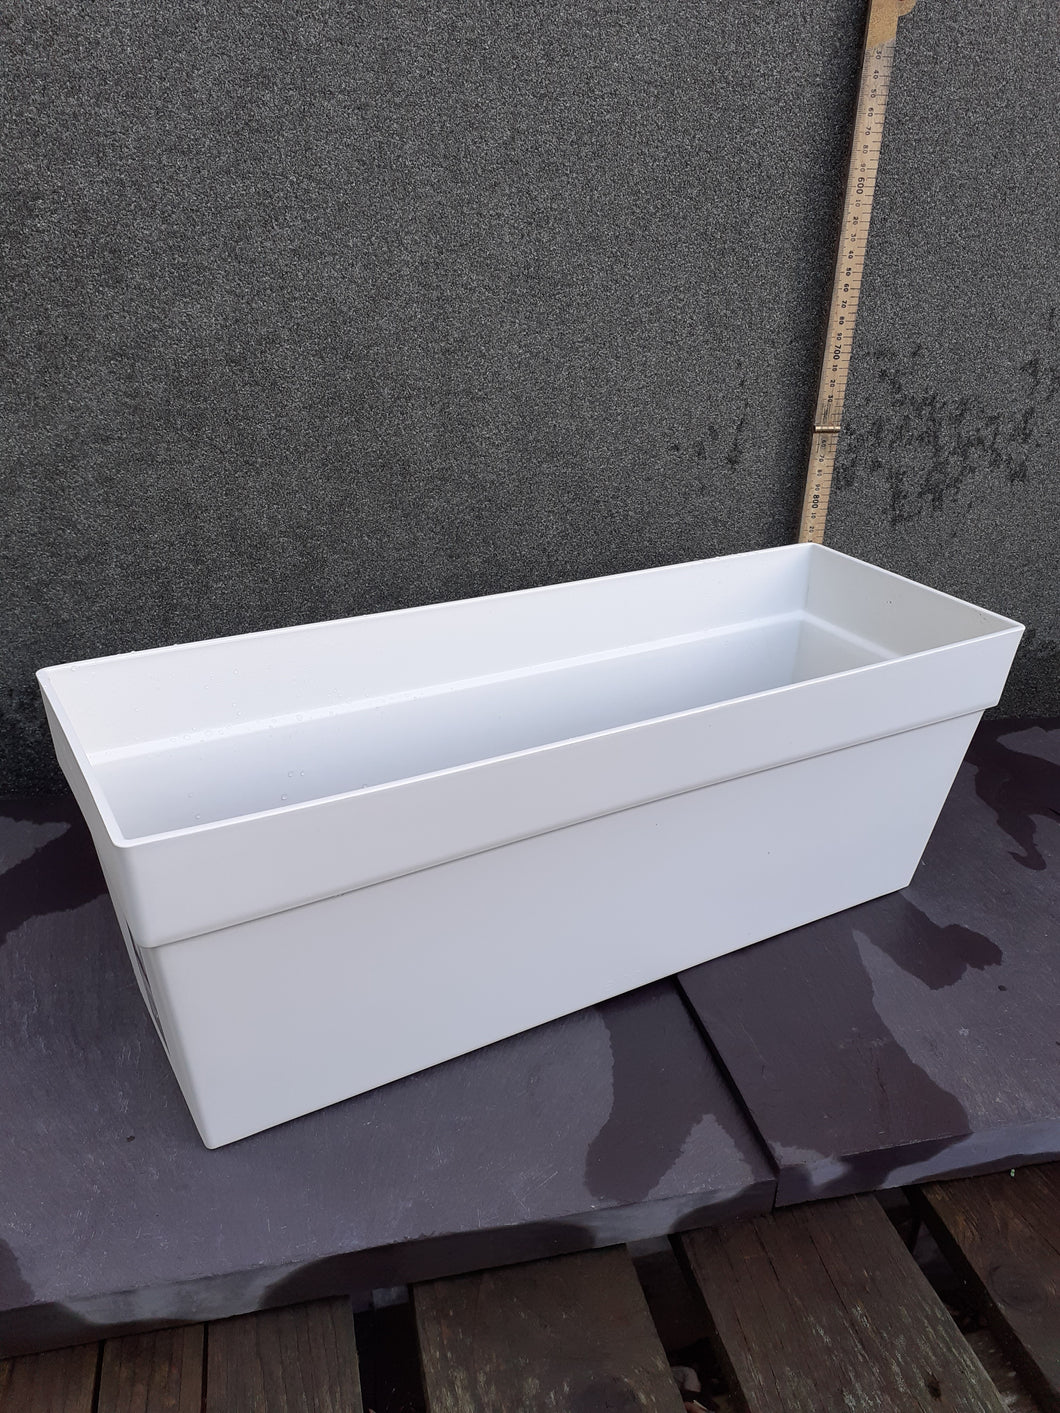 White loft urban trough L50cmD18cmH18cm